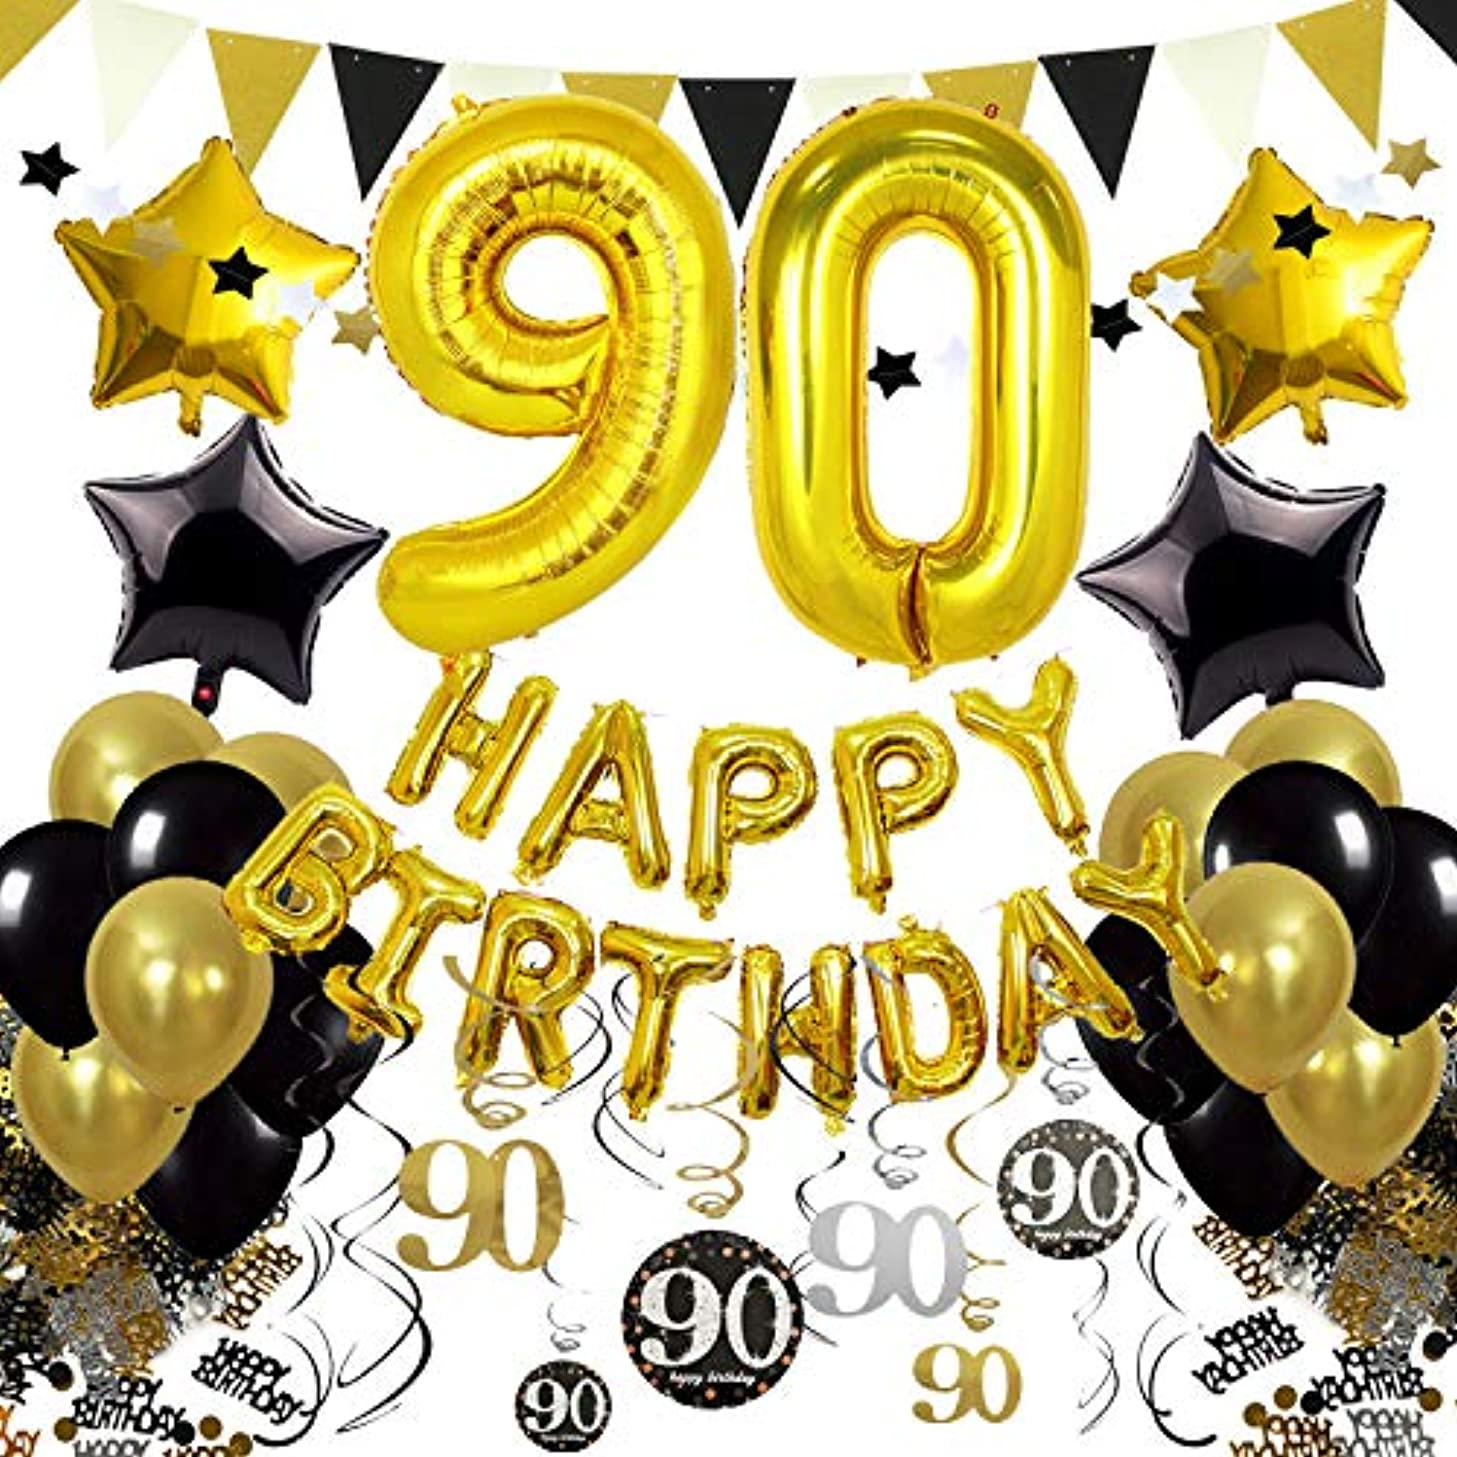 Cocodeko 90th Birthday Decorations, Black Gold Happy Birthday Balloons Number 90 Star Foil Balloons Birthday Confetti Triangular Garland Star-shaped Banner Hanging Swirls for Birthday Party Supplies